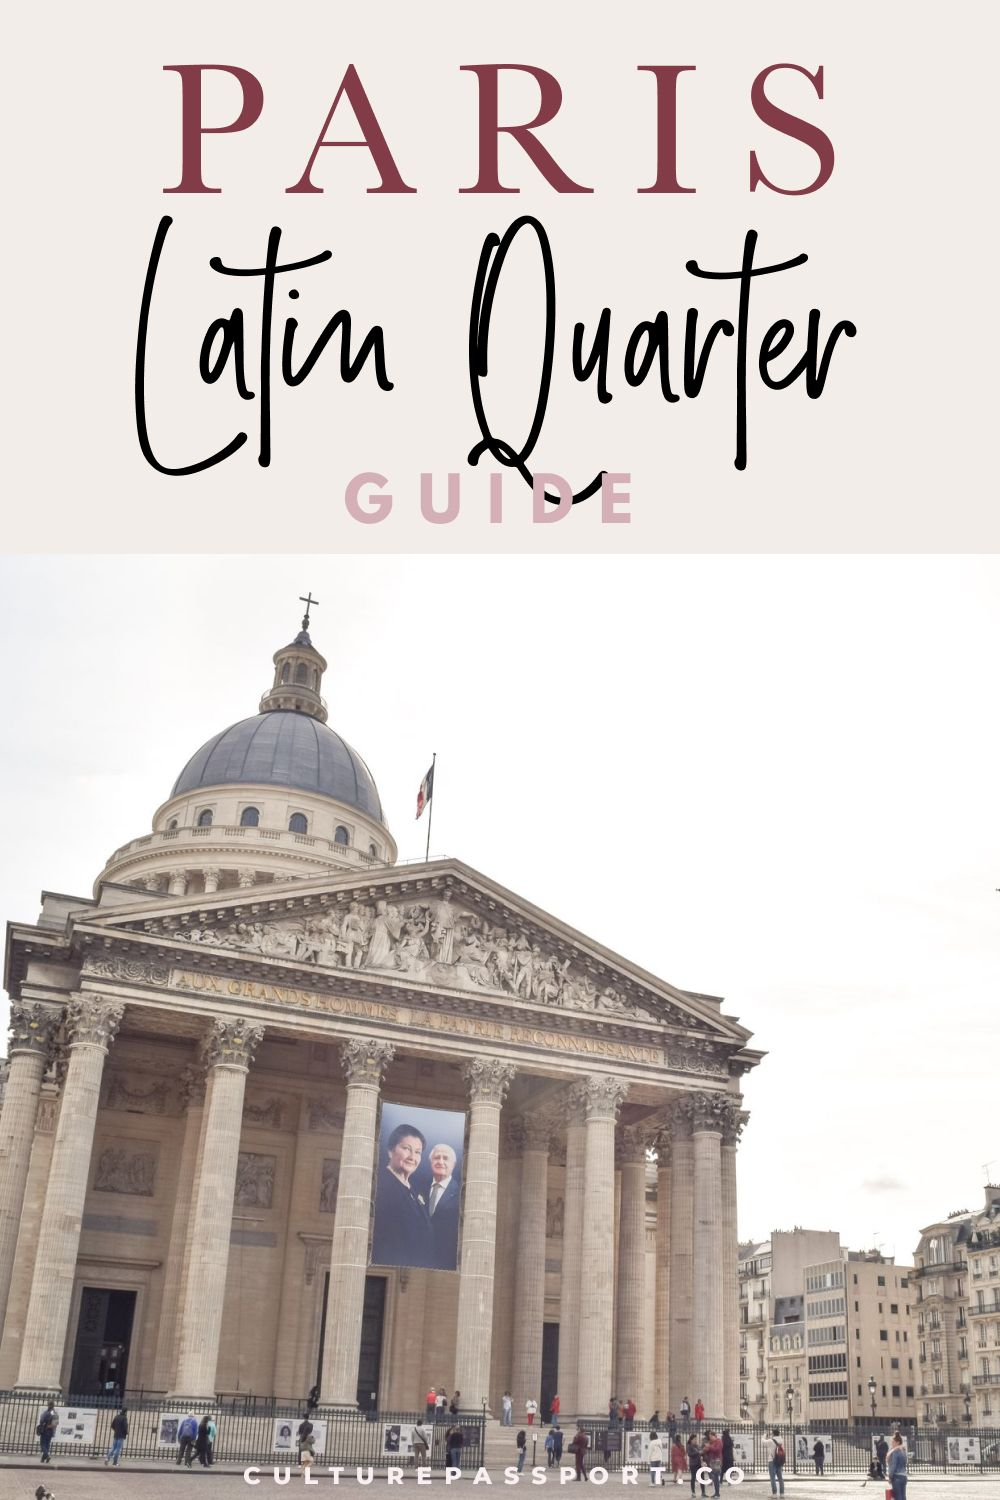 Paris Latin Quarter Guide